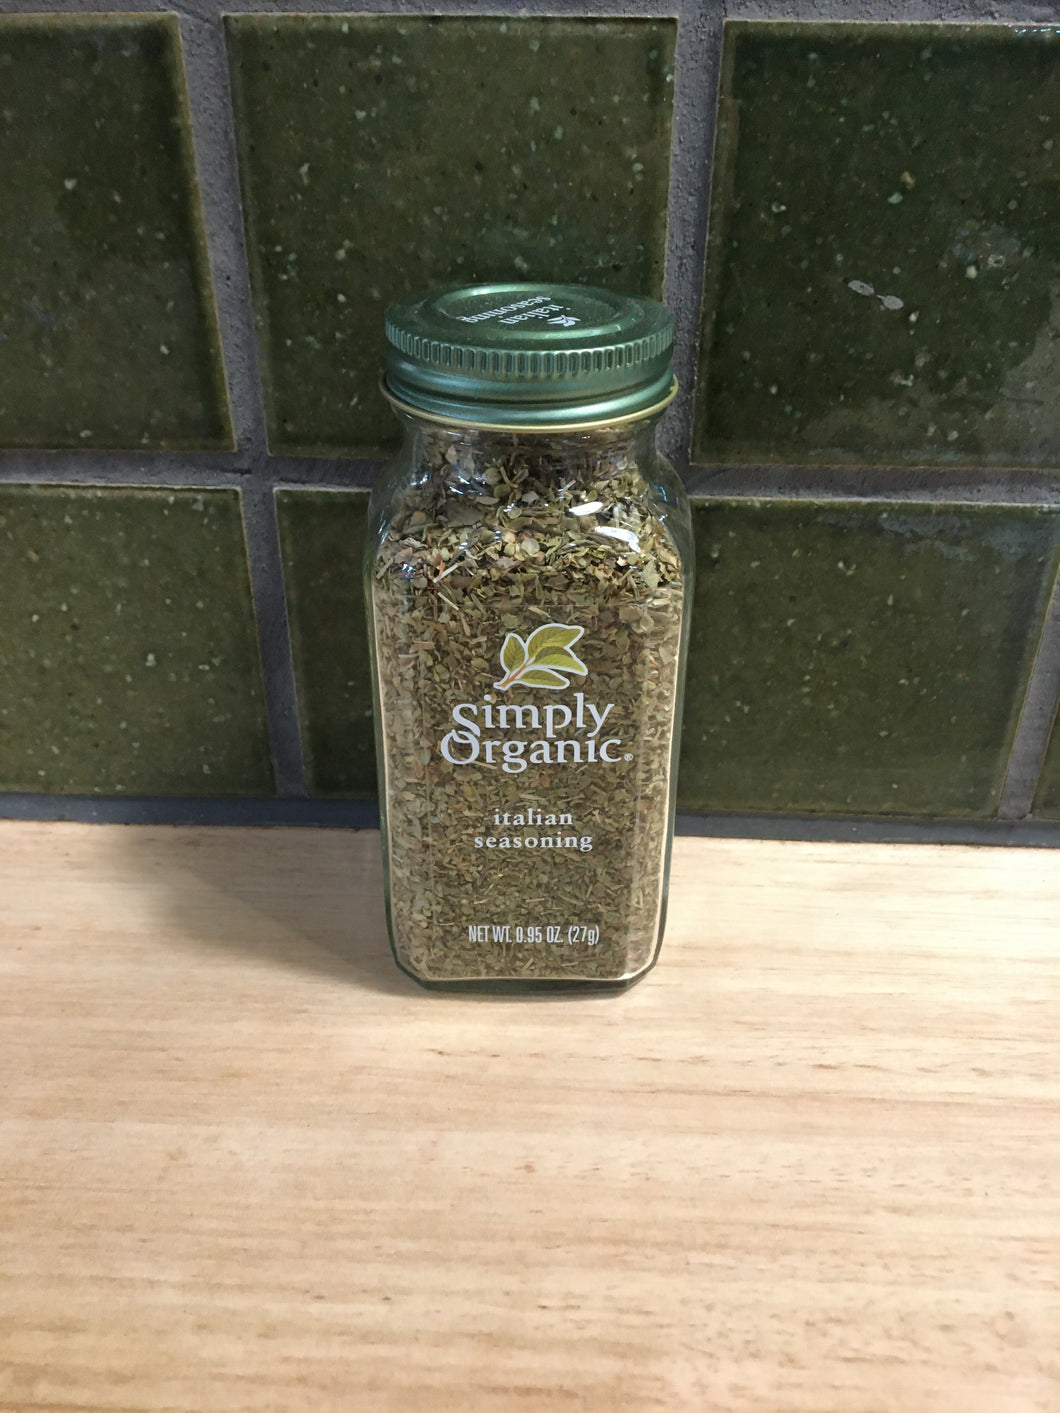 Simply Organic Italian Seasoning 27g